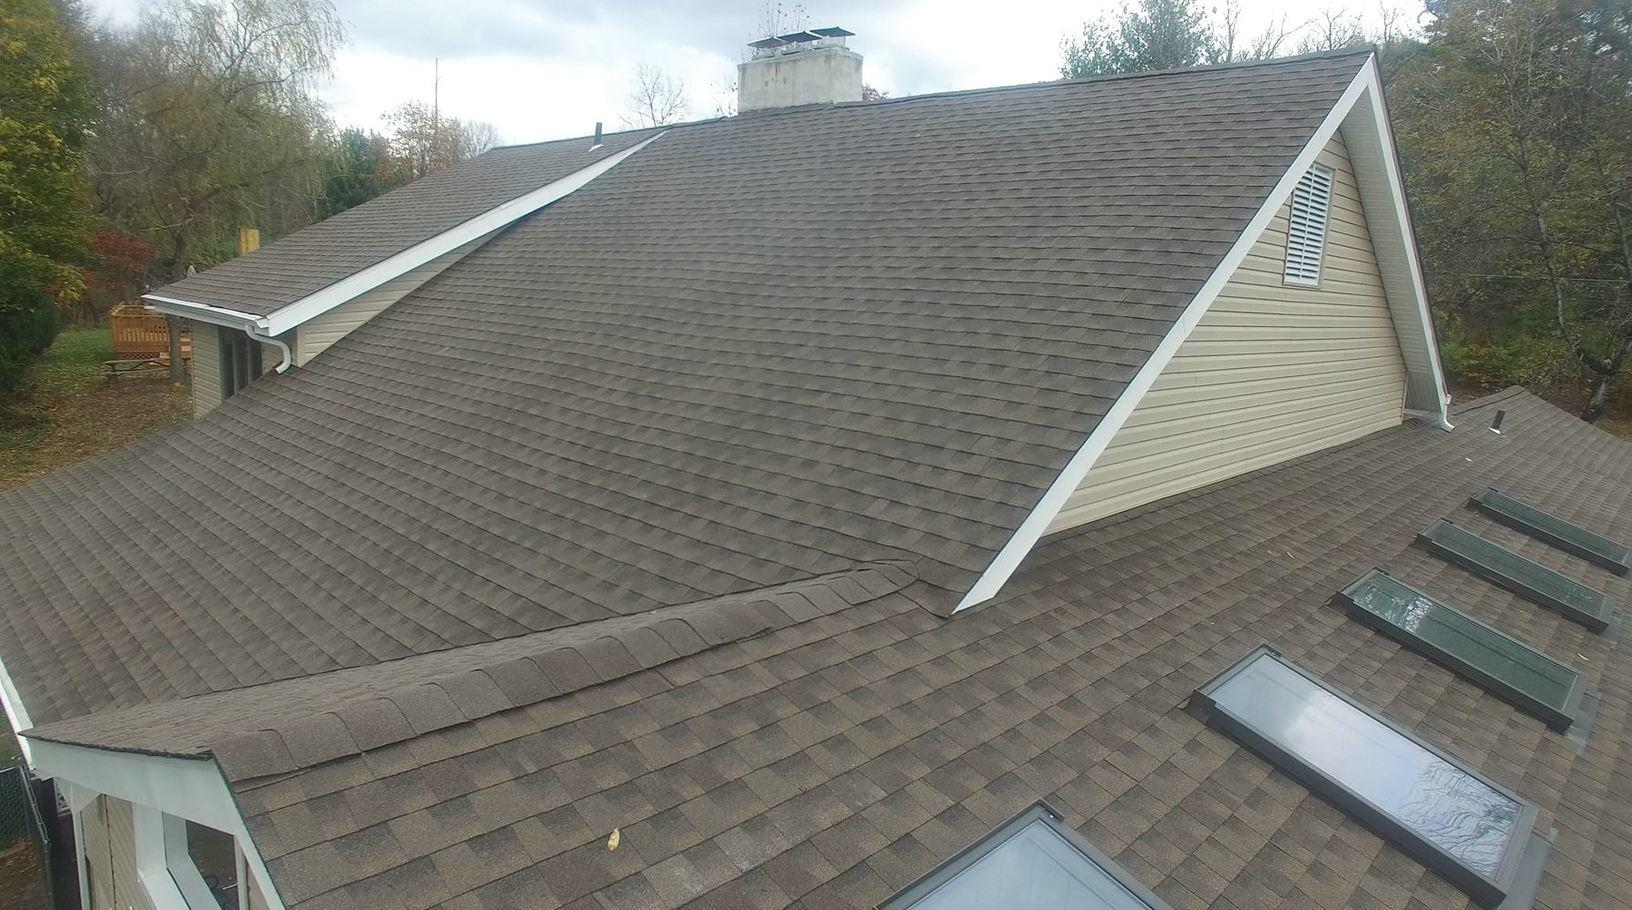 Main Roof, Architectural Shingles, Installed by Pinnacle Exteriors